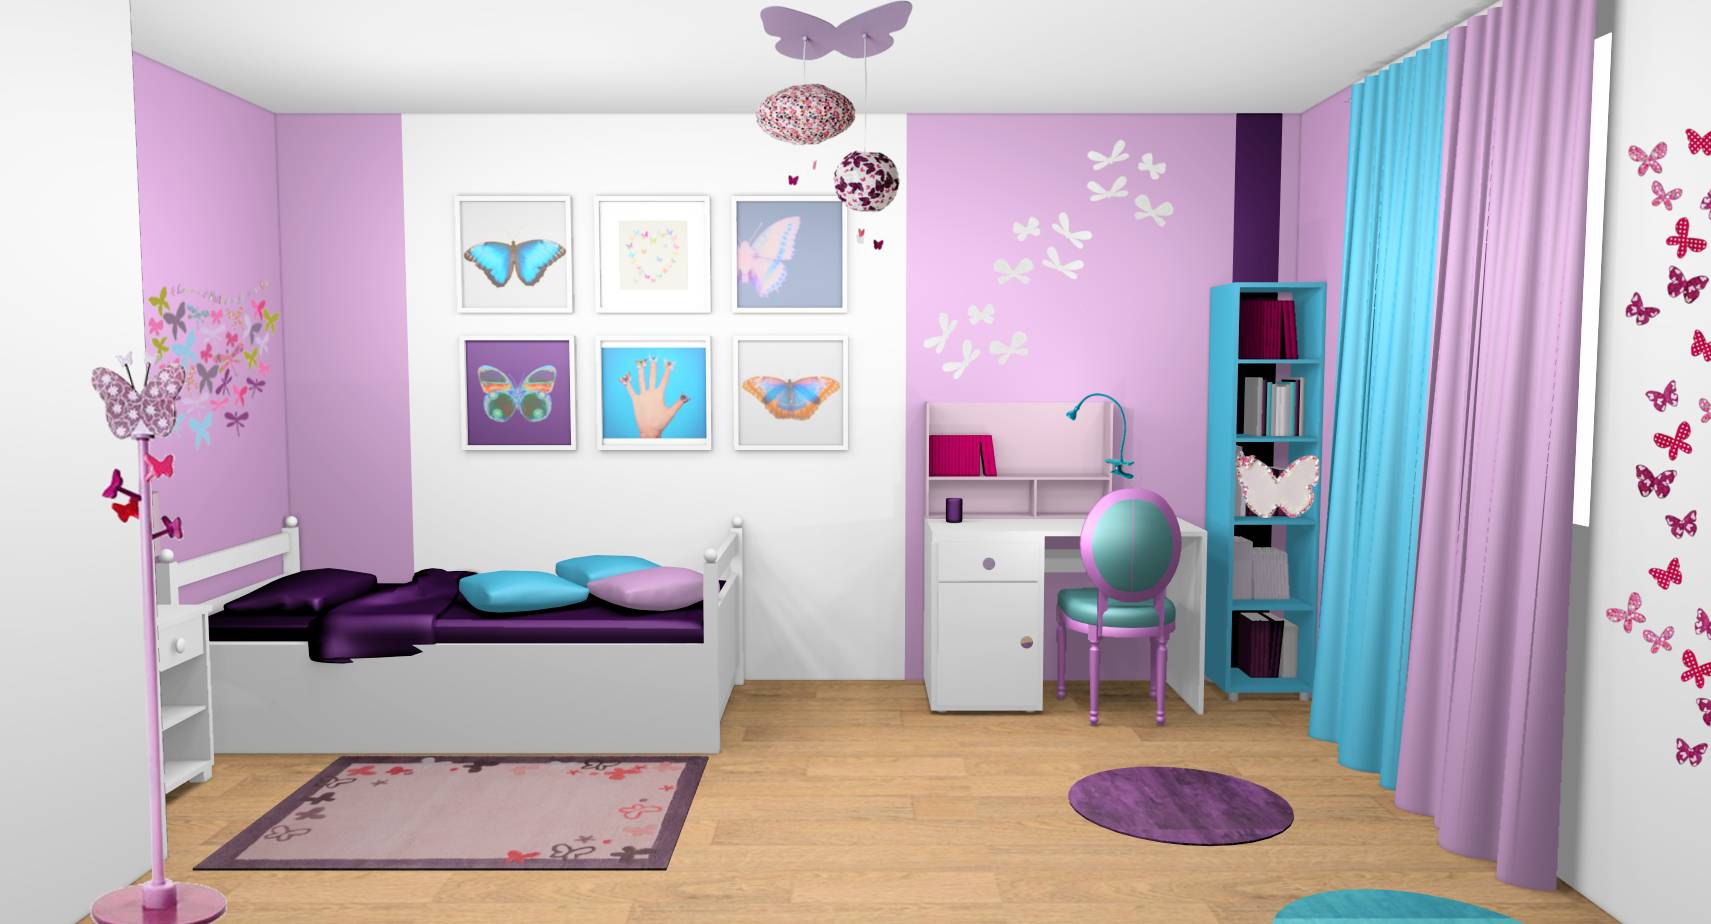 D coration d int rieur d une chambre de fille vaux le for Belle decoration d interieur